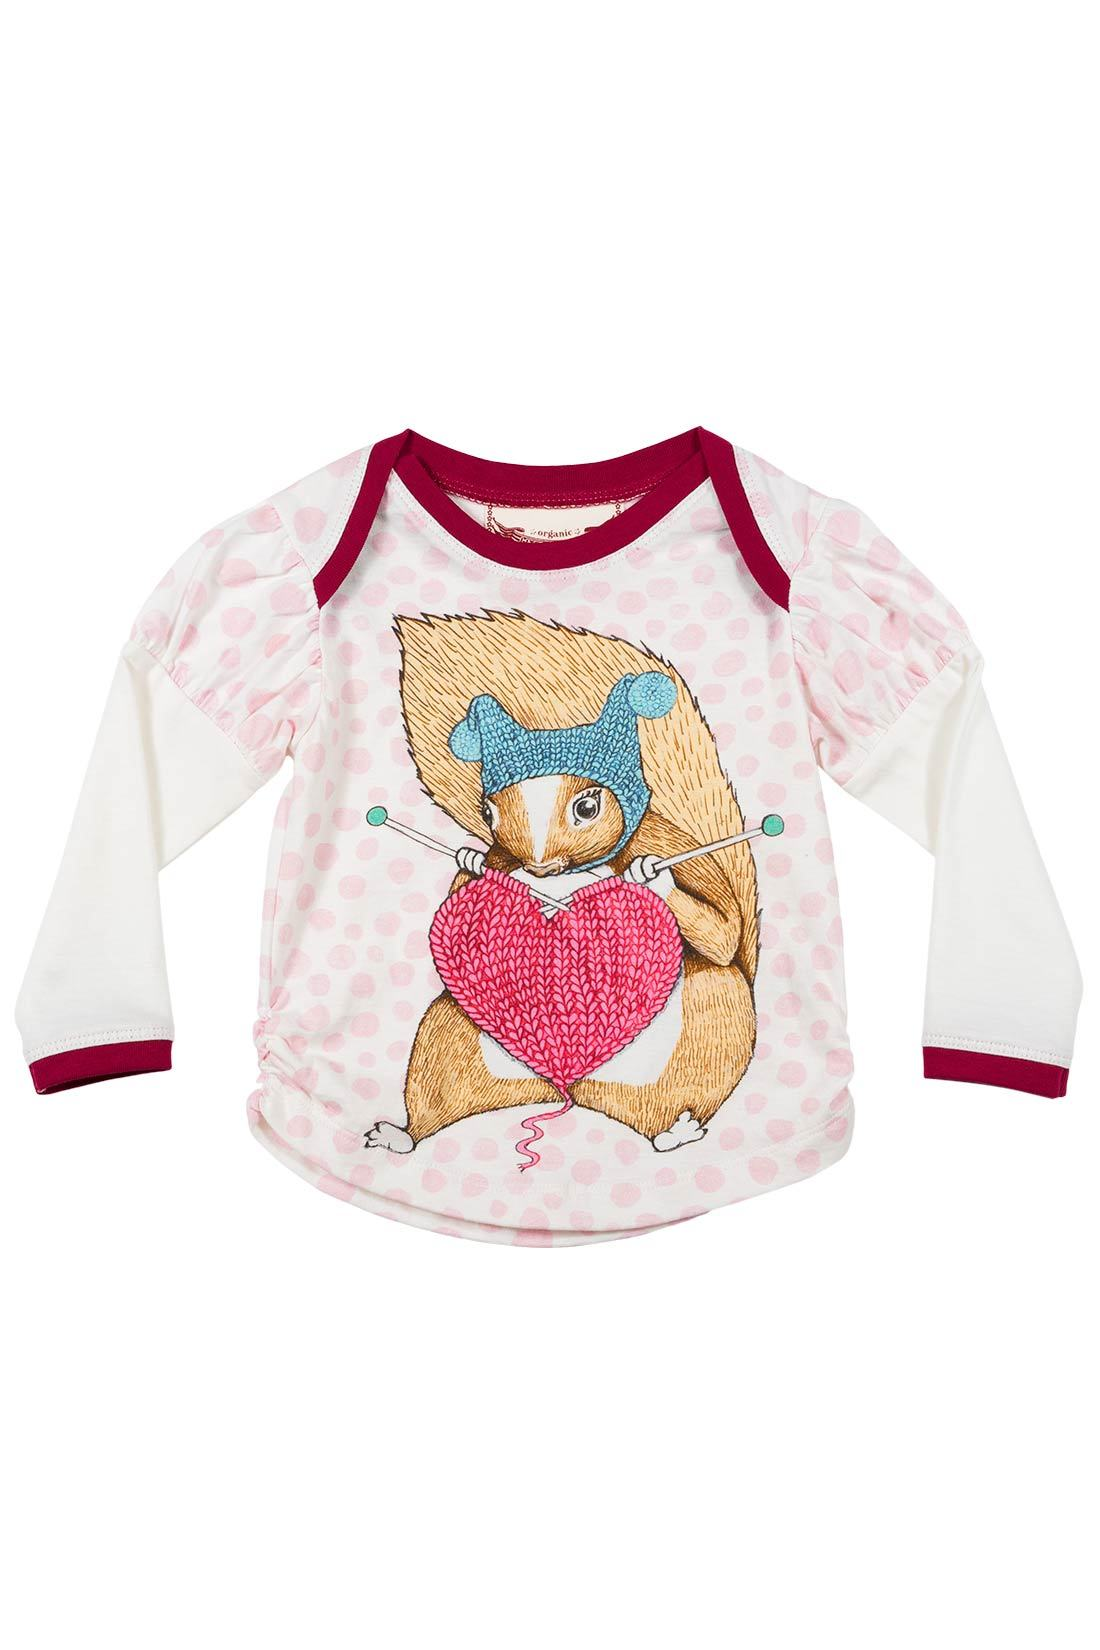 Little Wings Puff Slv Tee - Knitting Squirrel